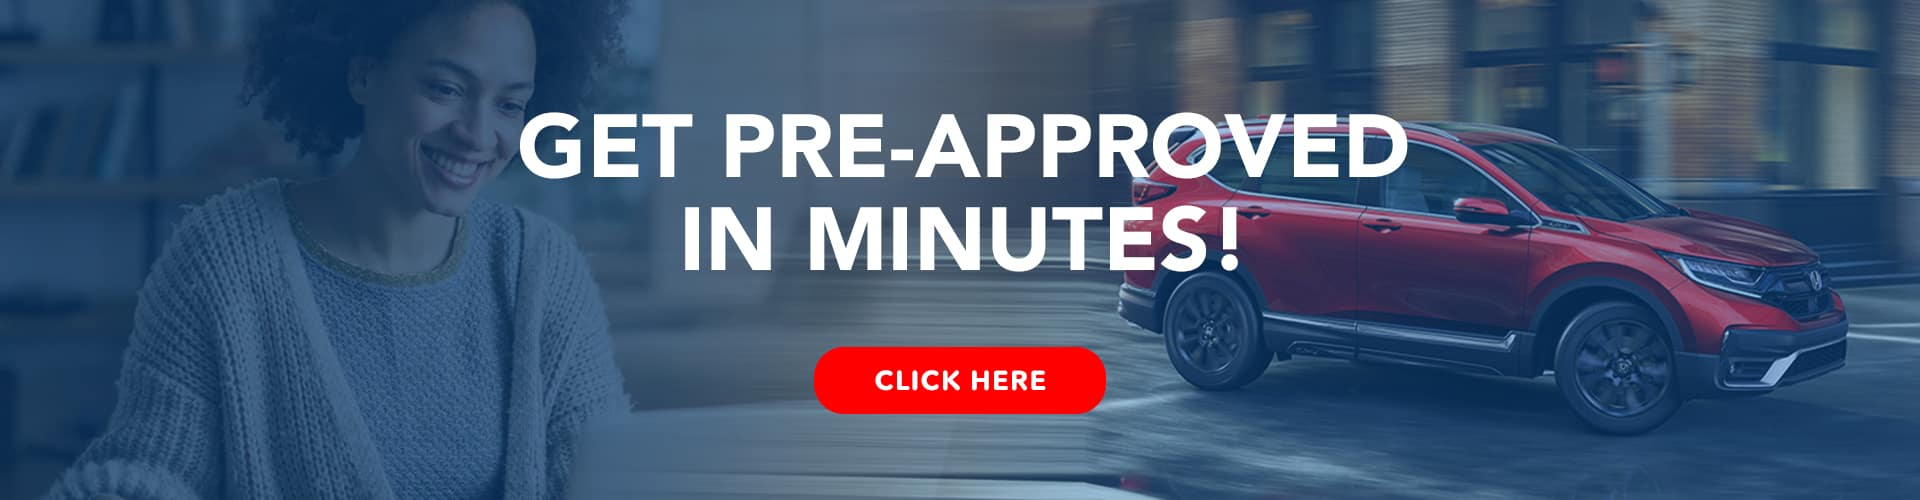 get pre-approved in minutes!